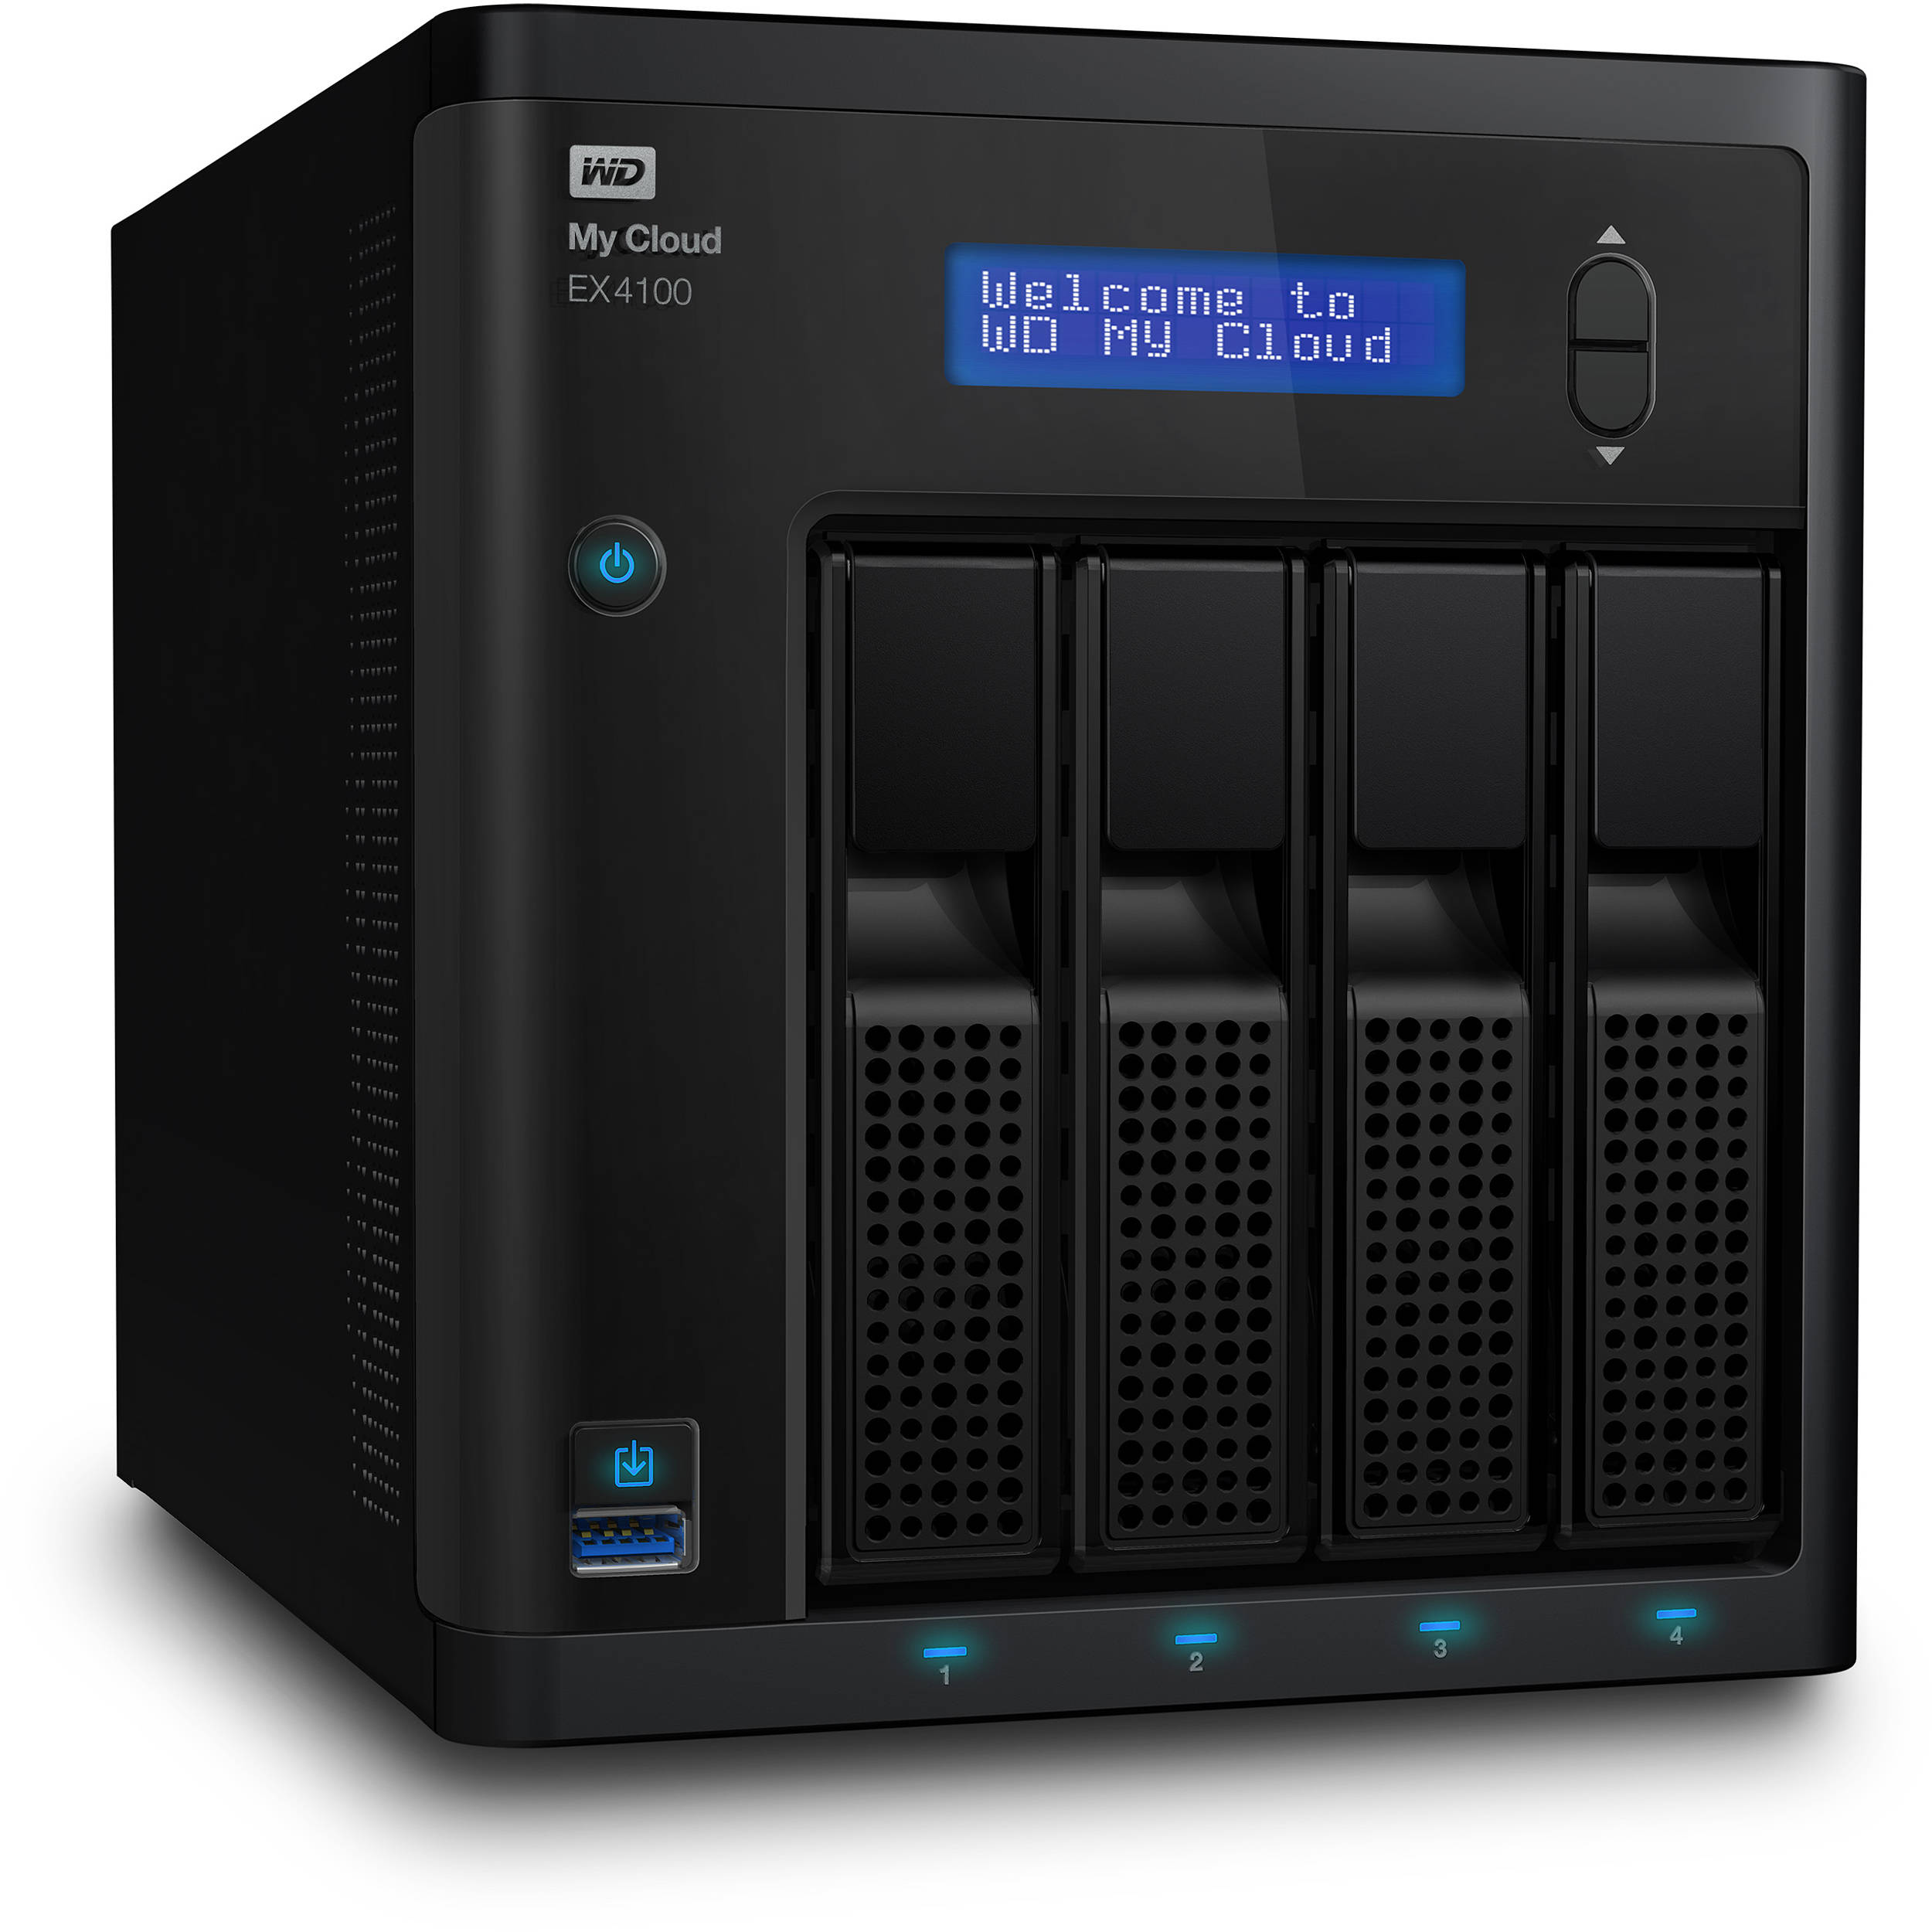 Wd My Cloud Expert Series Ex4100 24tb 4 Bay Wdbwze0240kbk Nesn